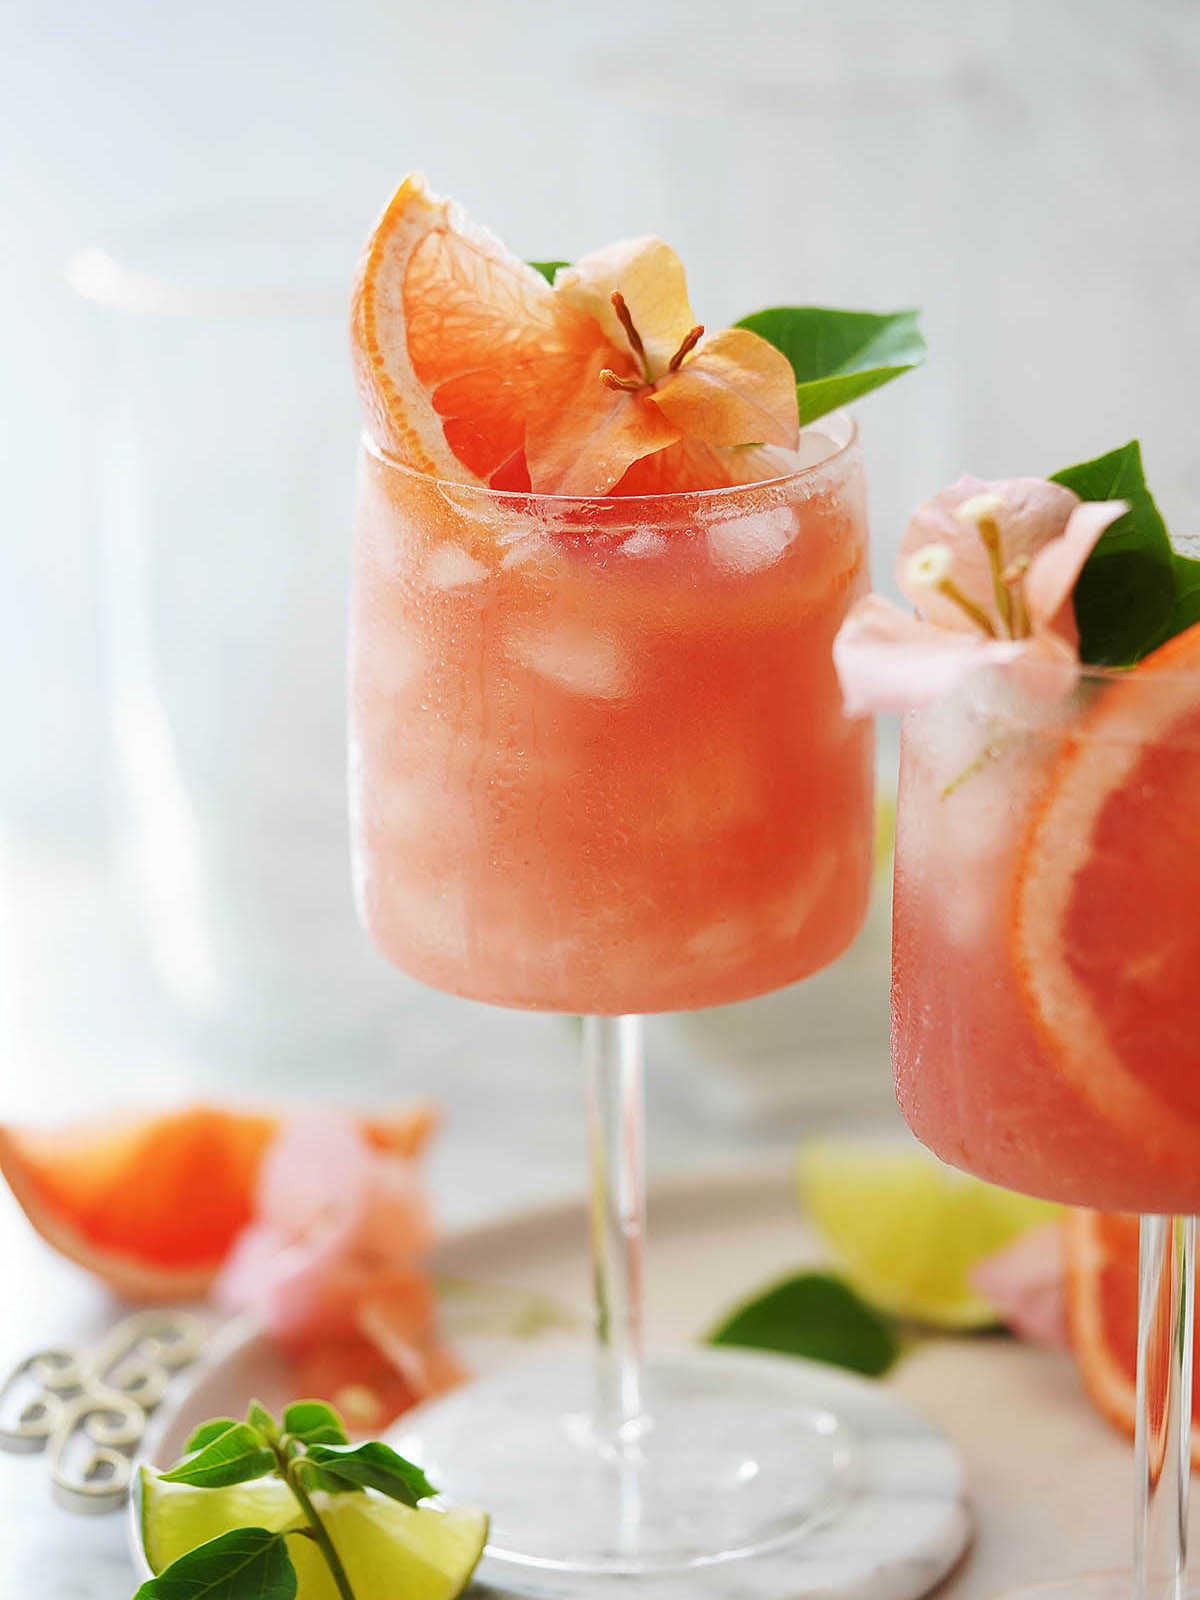 Paloma cocktail garnished with grapefruit and an orange flower.